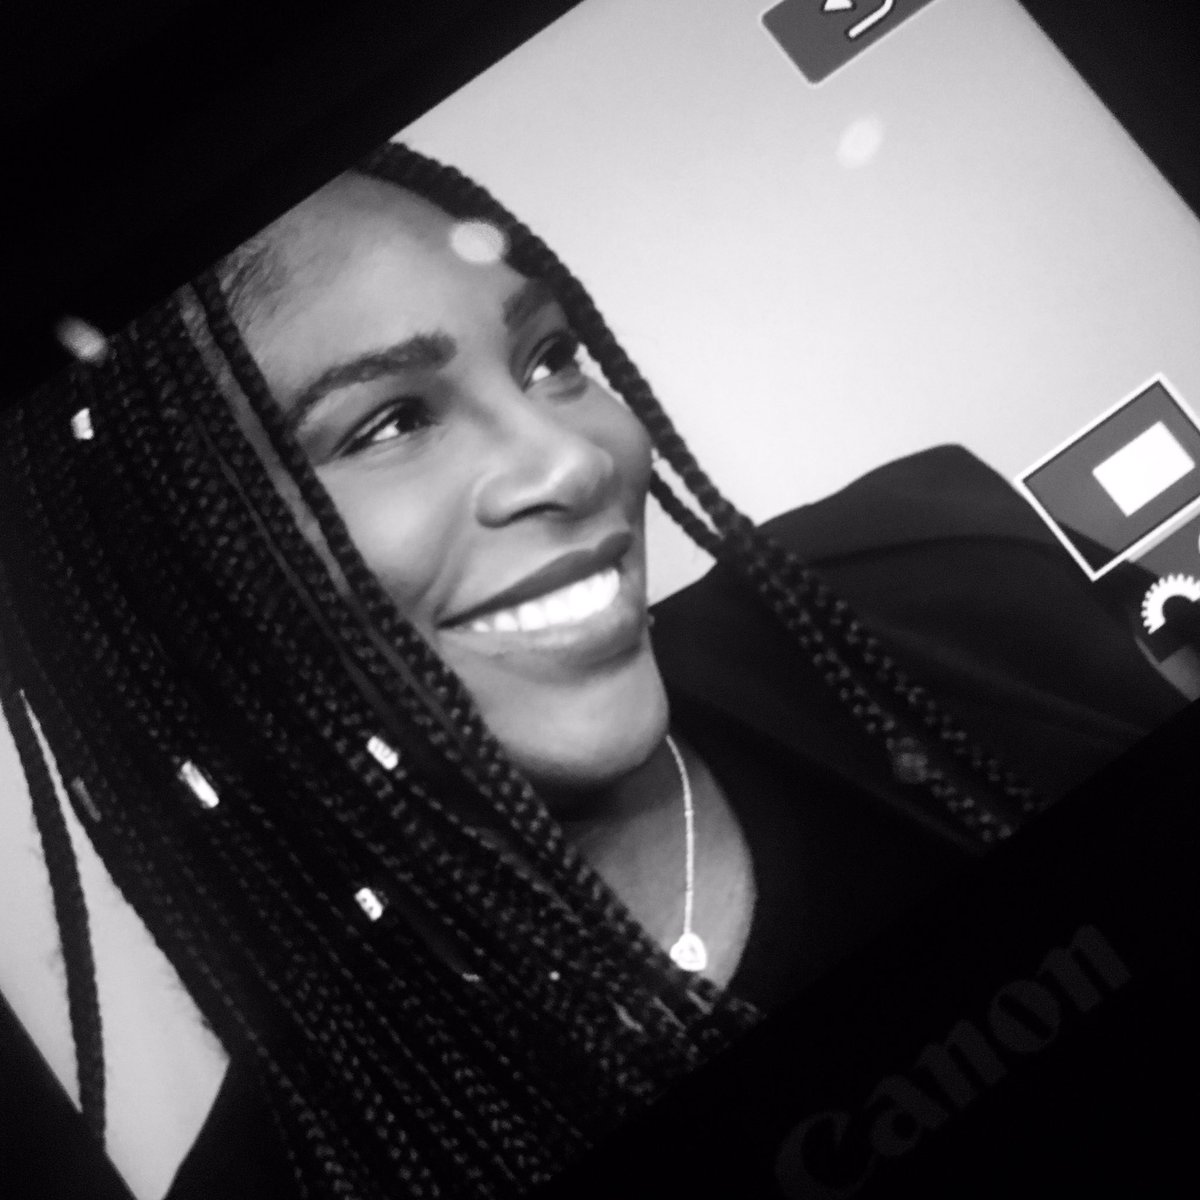 EbsworthPhoto: Shooting the wonderful @serenawilliams in Vegas today for #MagentoImagine at @WynnLasVegas. @magento What a week! https://t.co/89bJSSAtoE